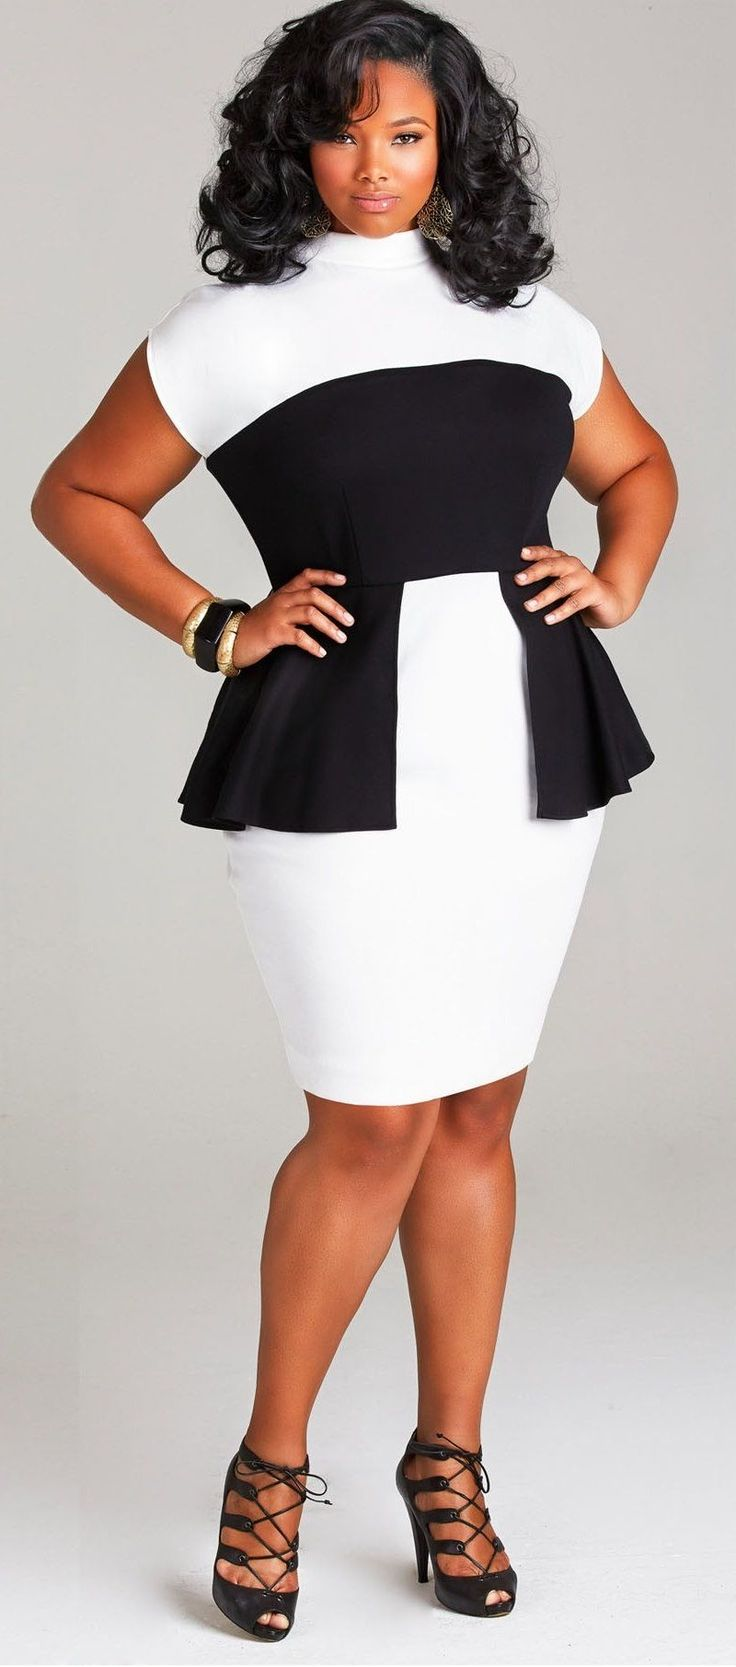 Plus size fashion: